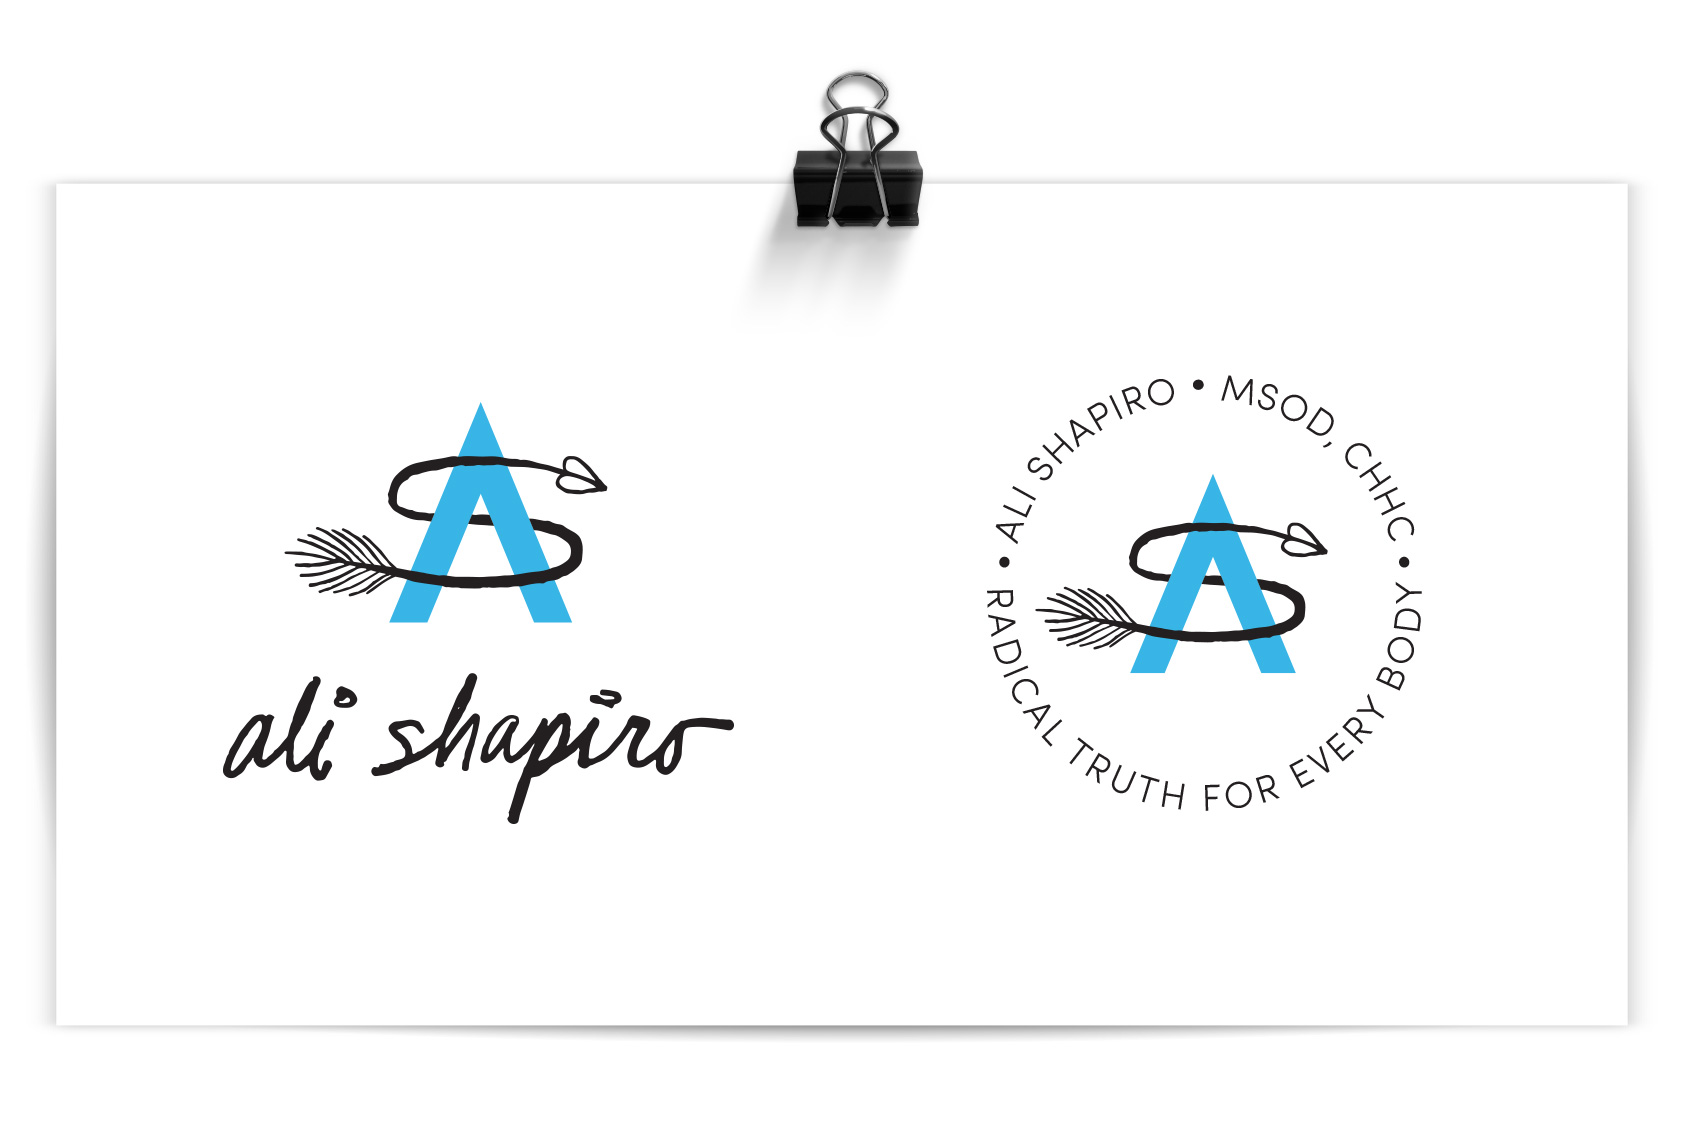 Ali Shapiro logos - an AS monogram with a modern A and a windy feather arrow S.